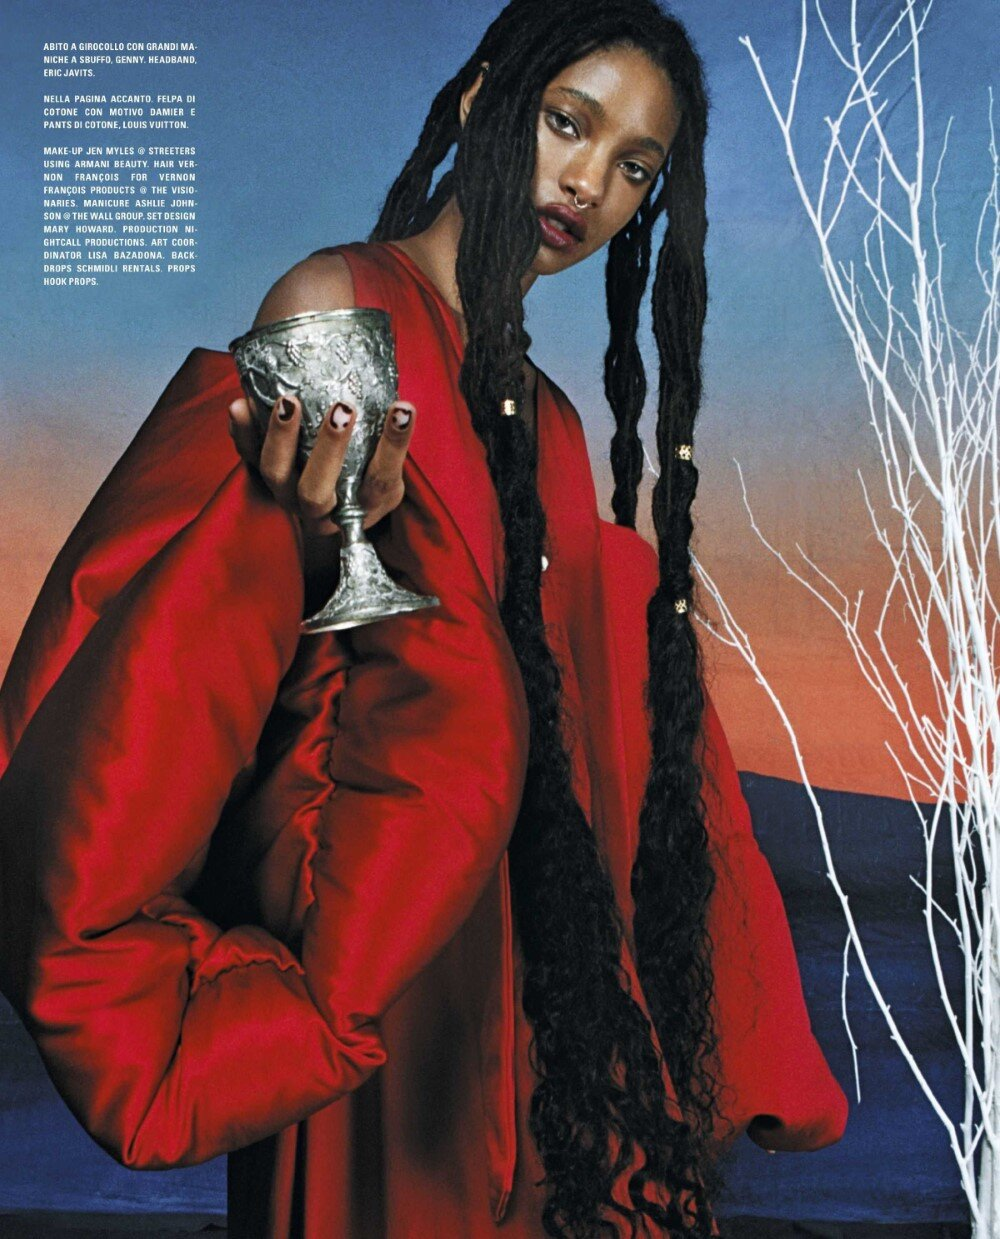 Jaden + Willow Smith Hugo Comte Vogue Italia Oct 2019 (5).jpg